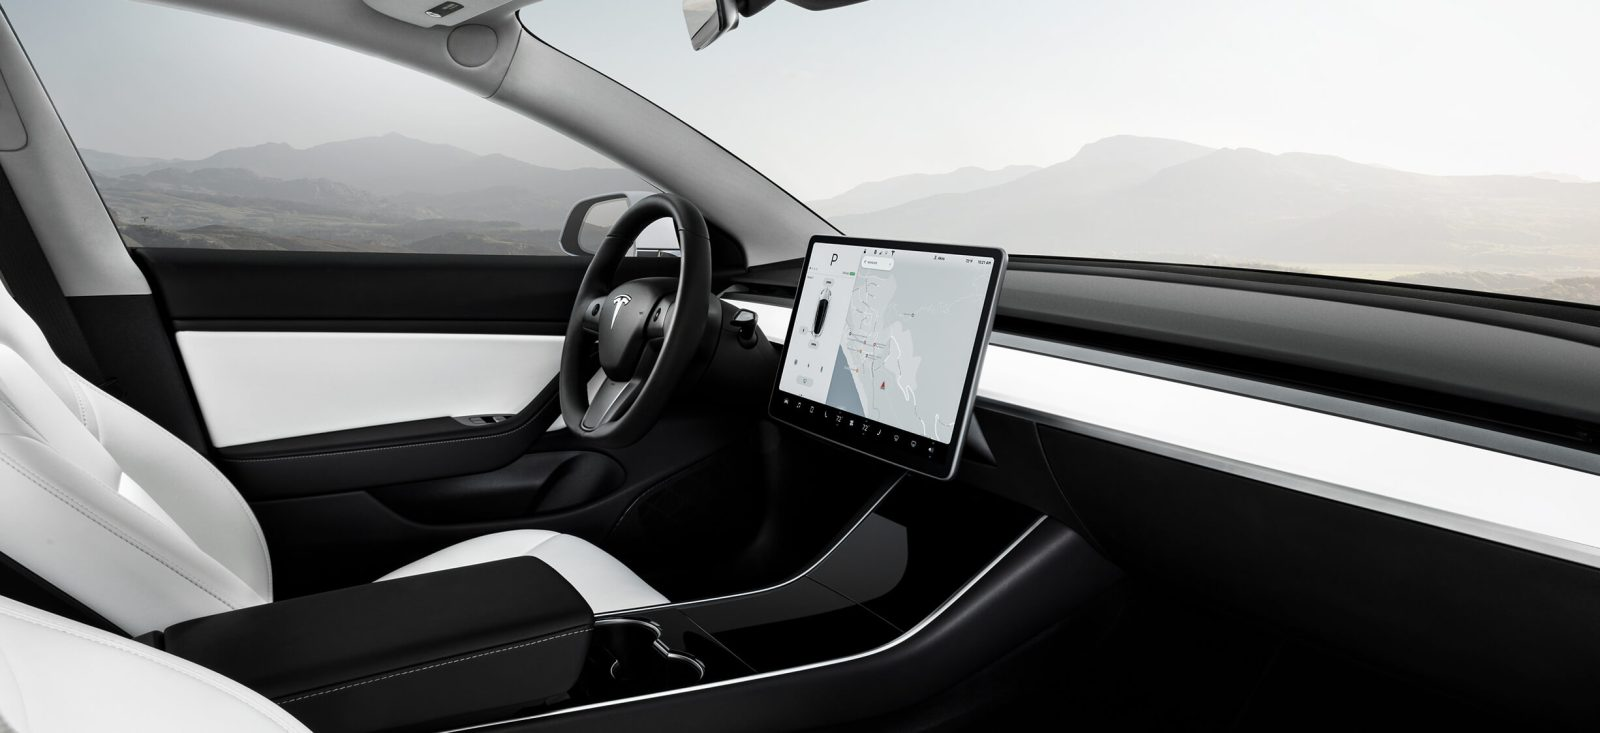 Tesla Improves Regenerative Braking On Model 3 Through Over The Air Update